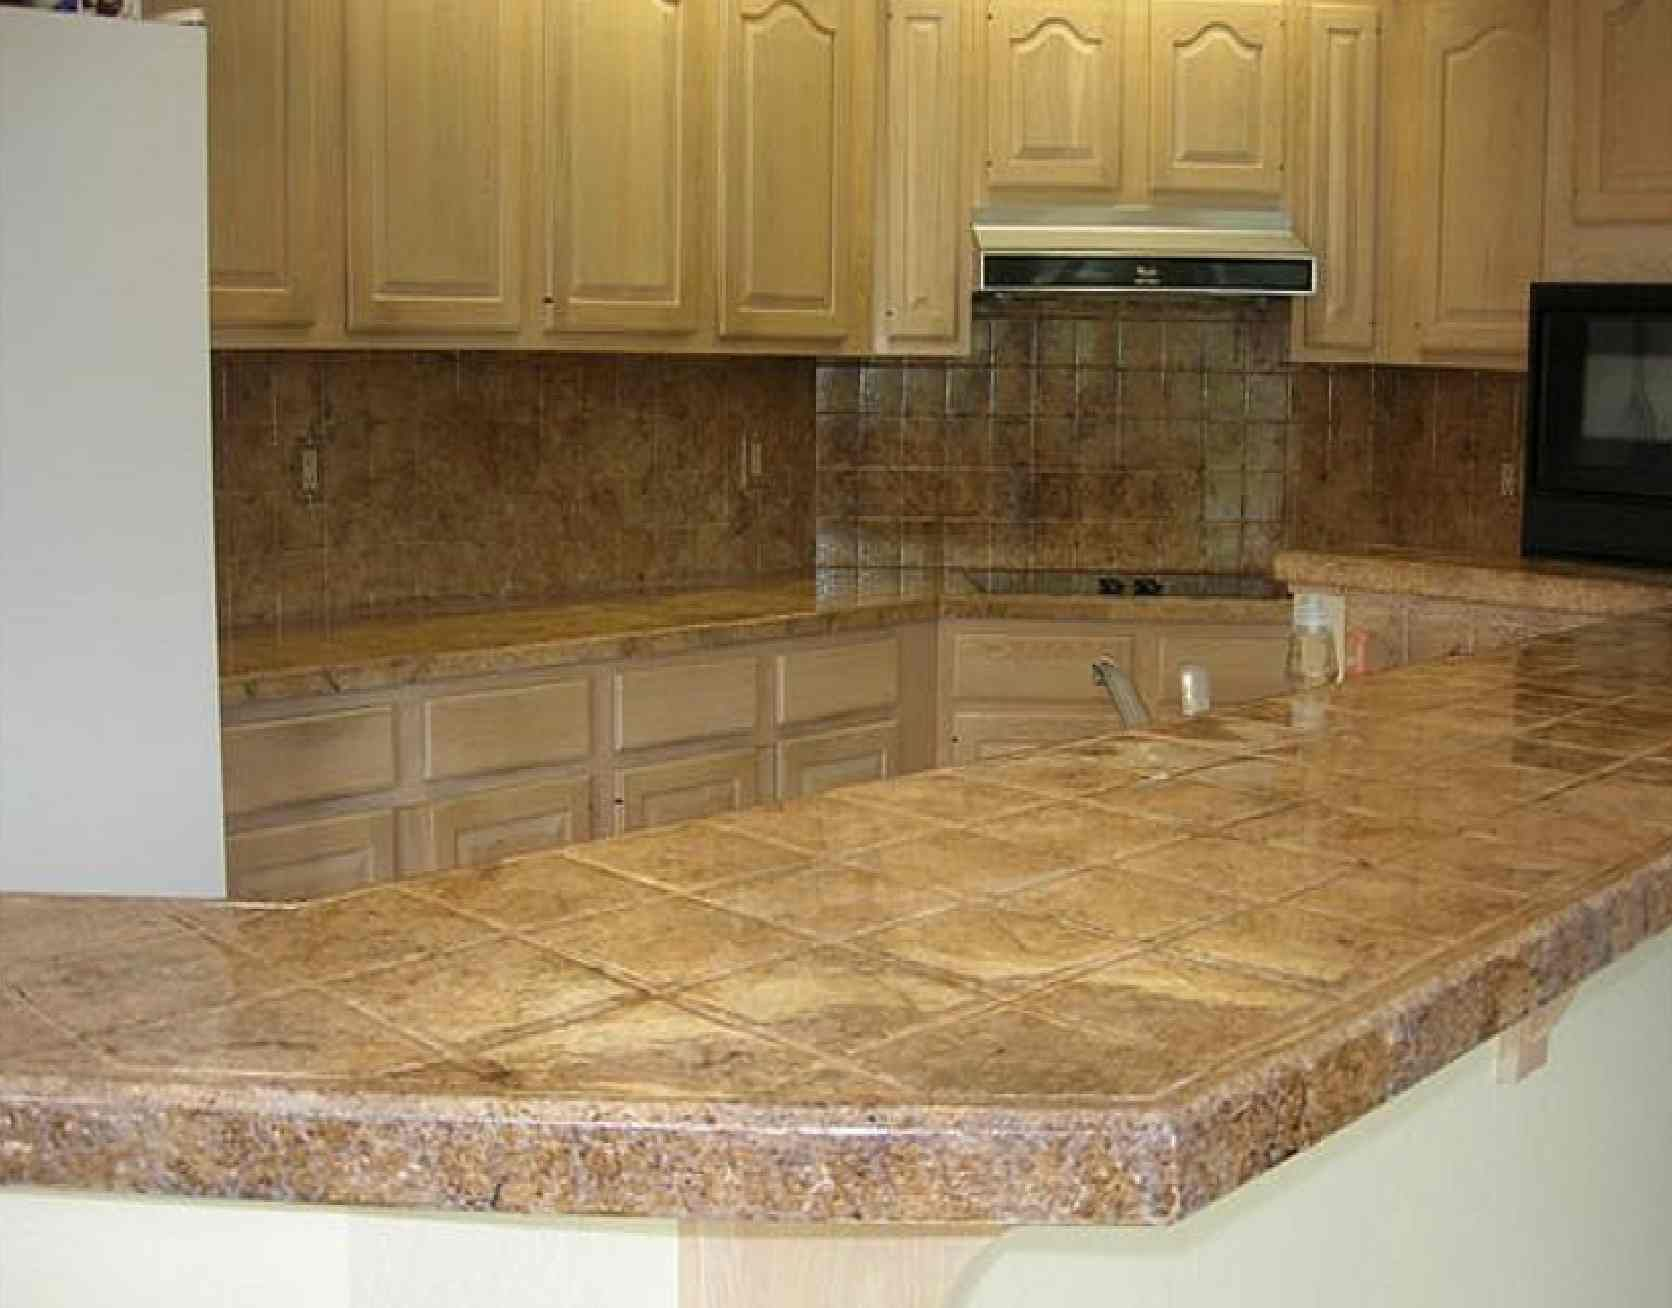 Backsplash ideas · Painting Tile